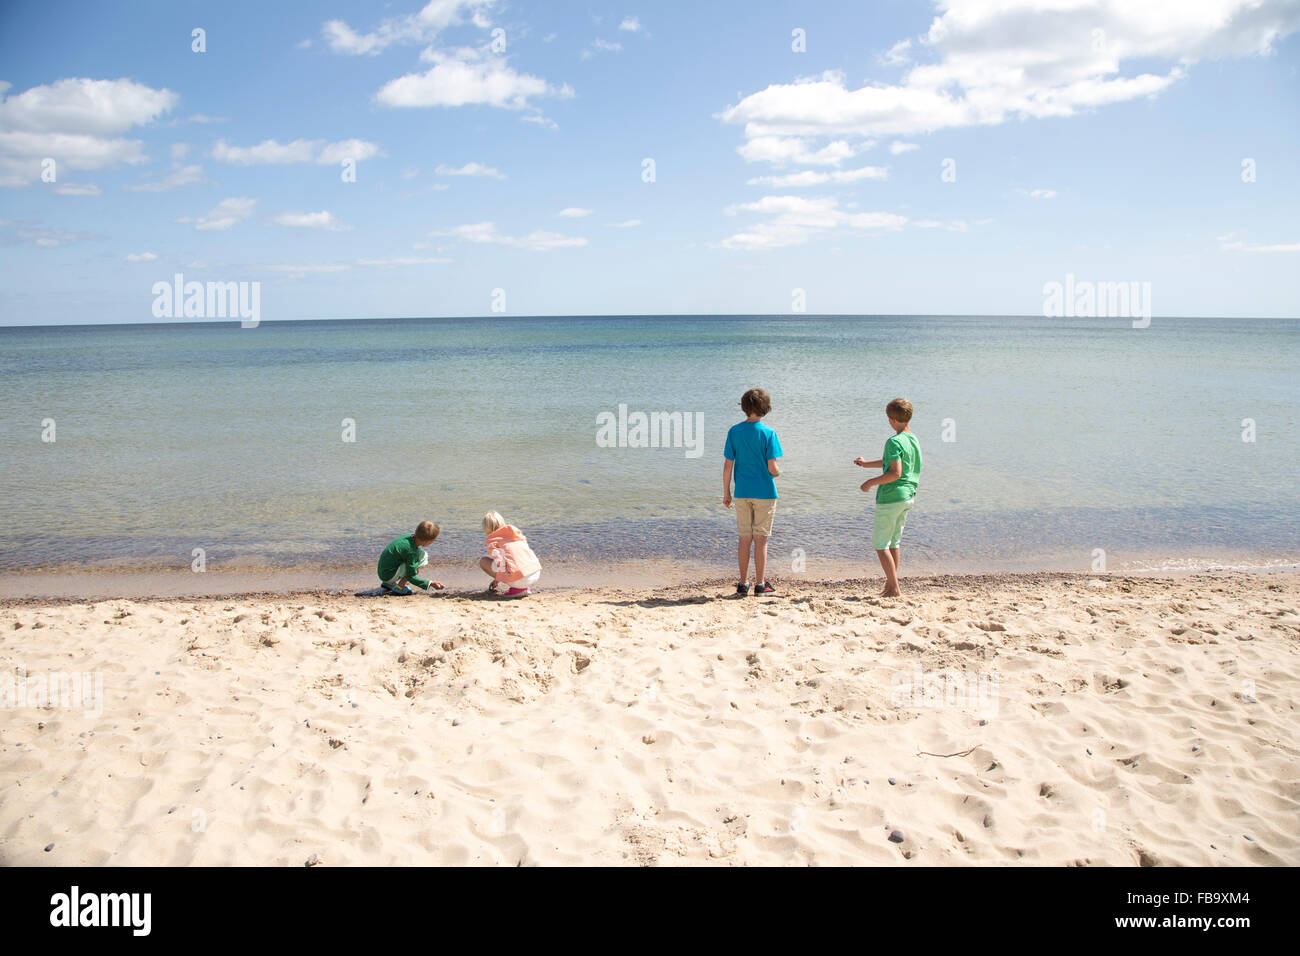 Sweden, Skane, Osterlen, Stenshuvud, Kids (8-9, 10-11, 12-13) playing on beach - Stock Image